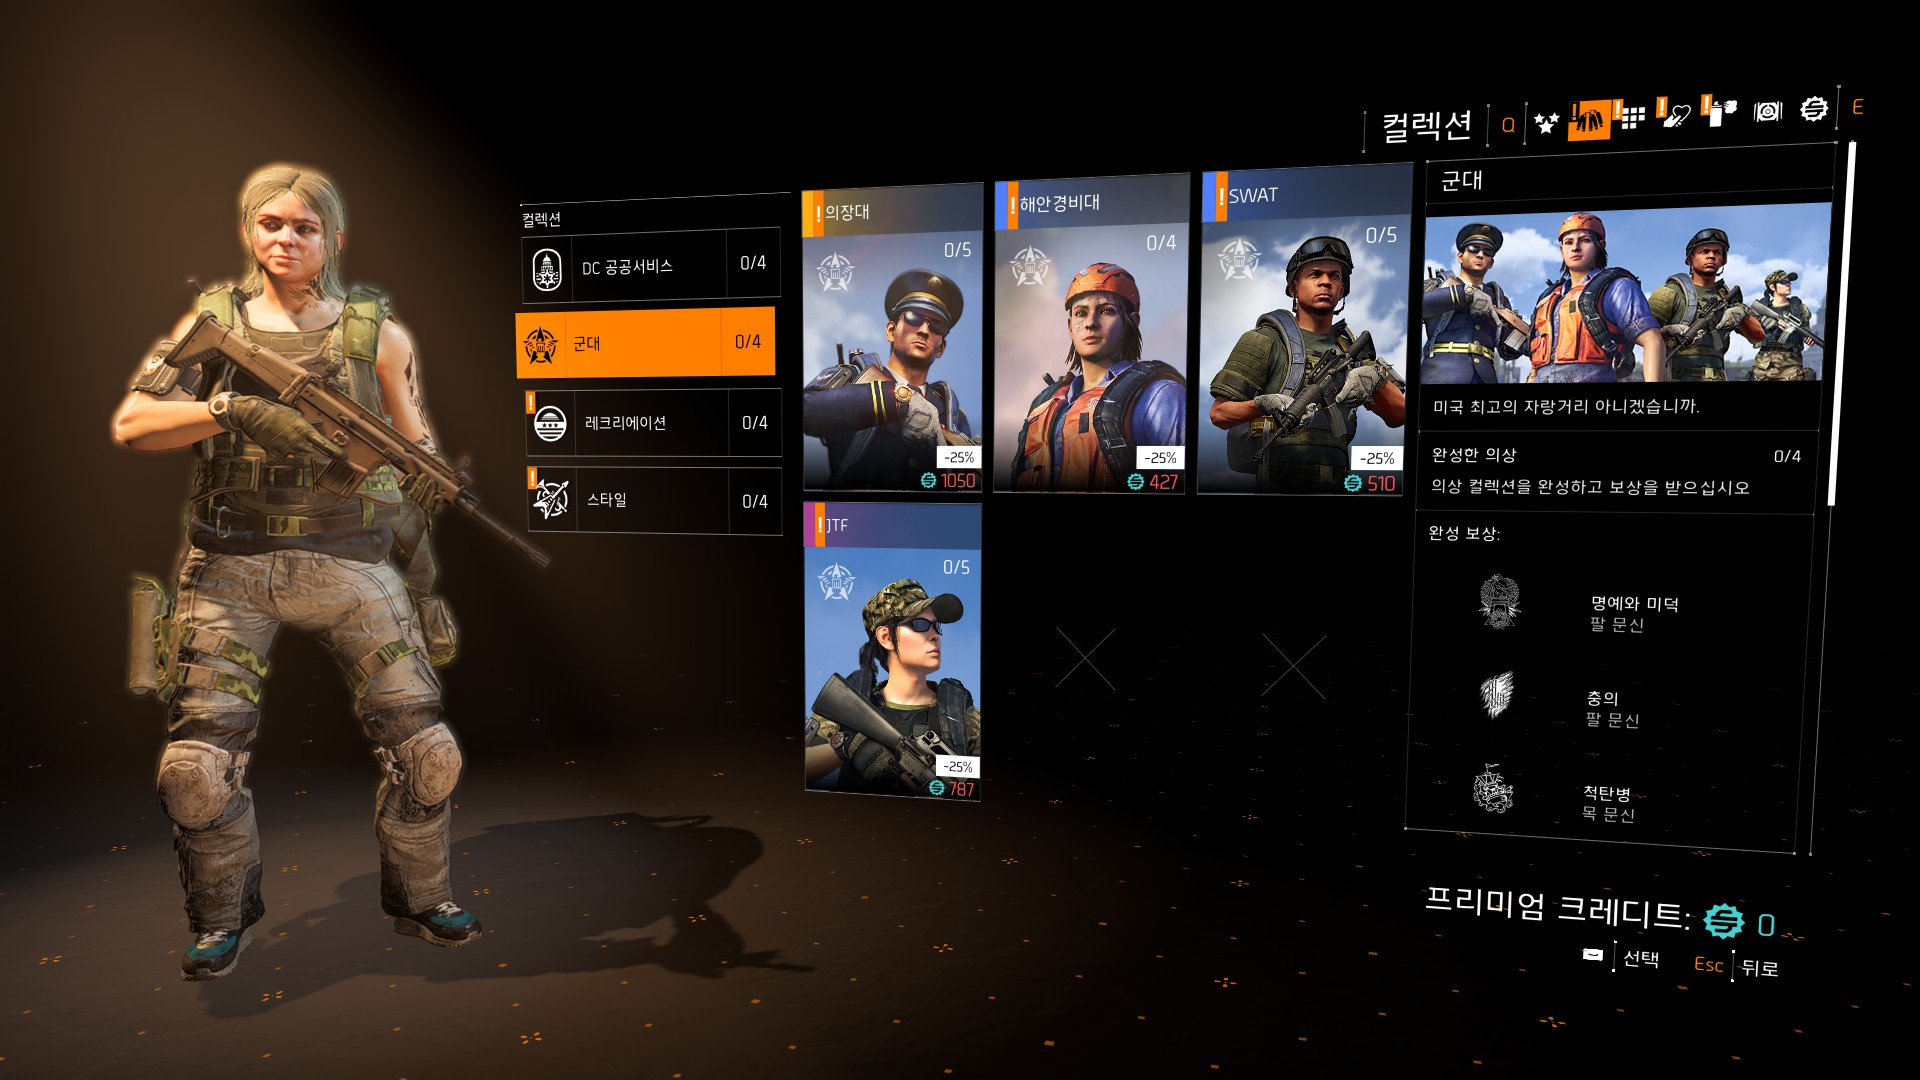 Tom Clancy's The Division® 22019-3-11-23-17-57.jpg